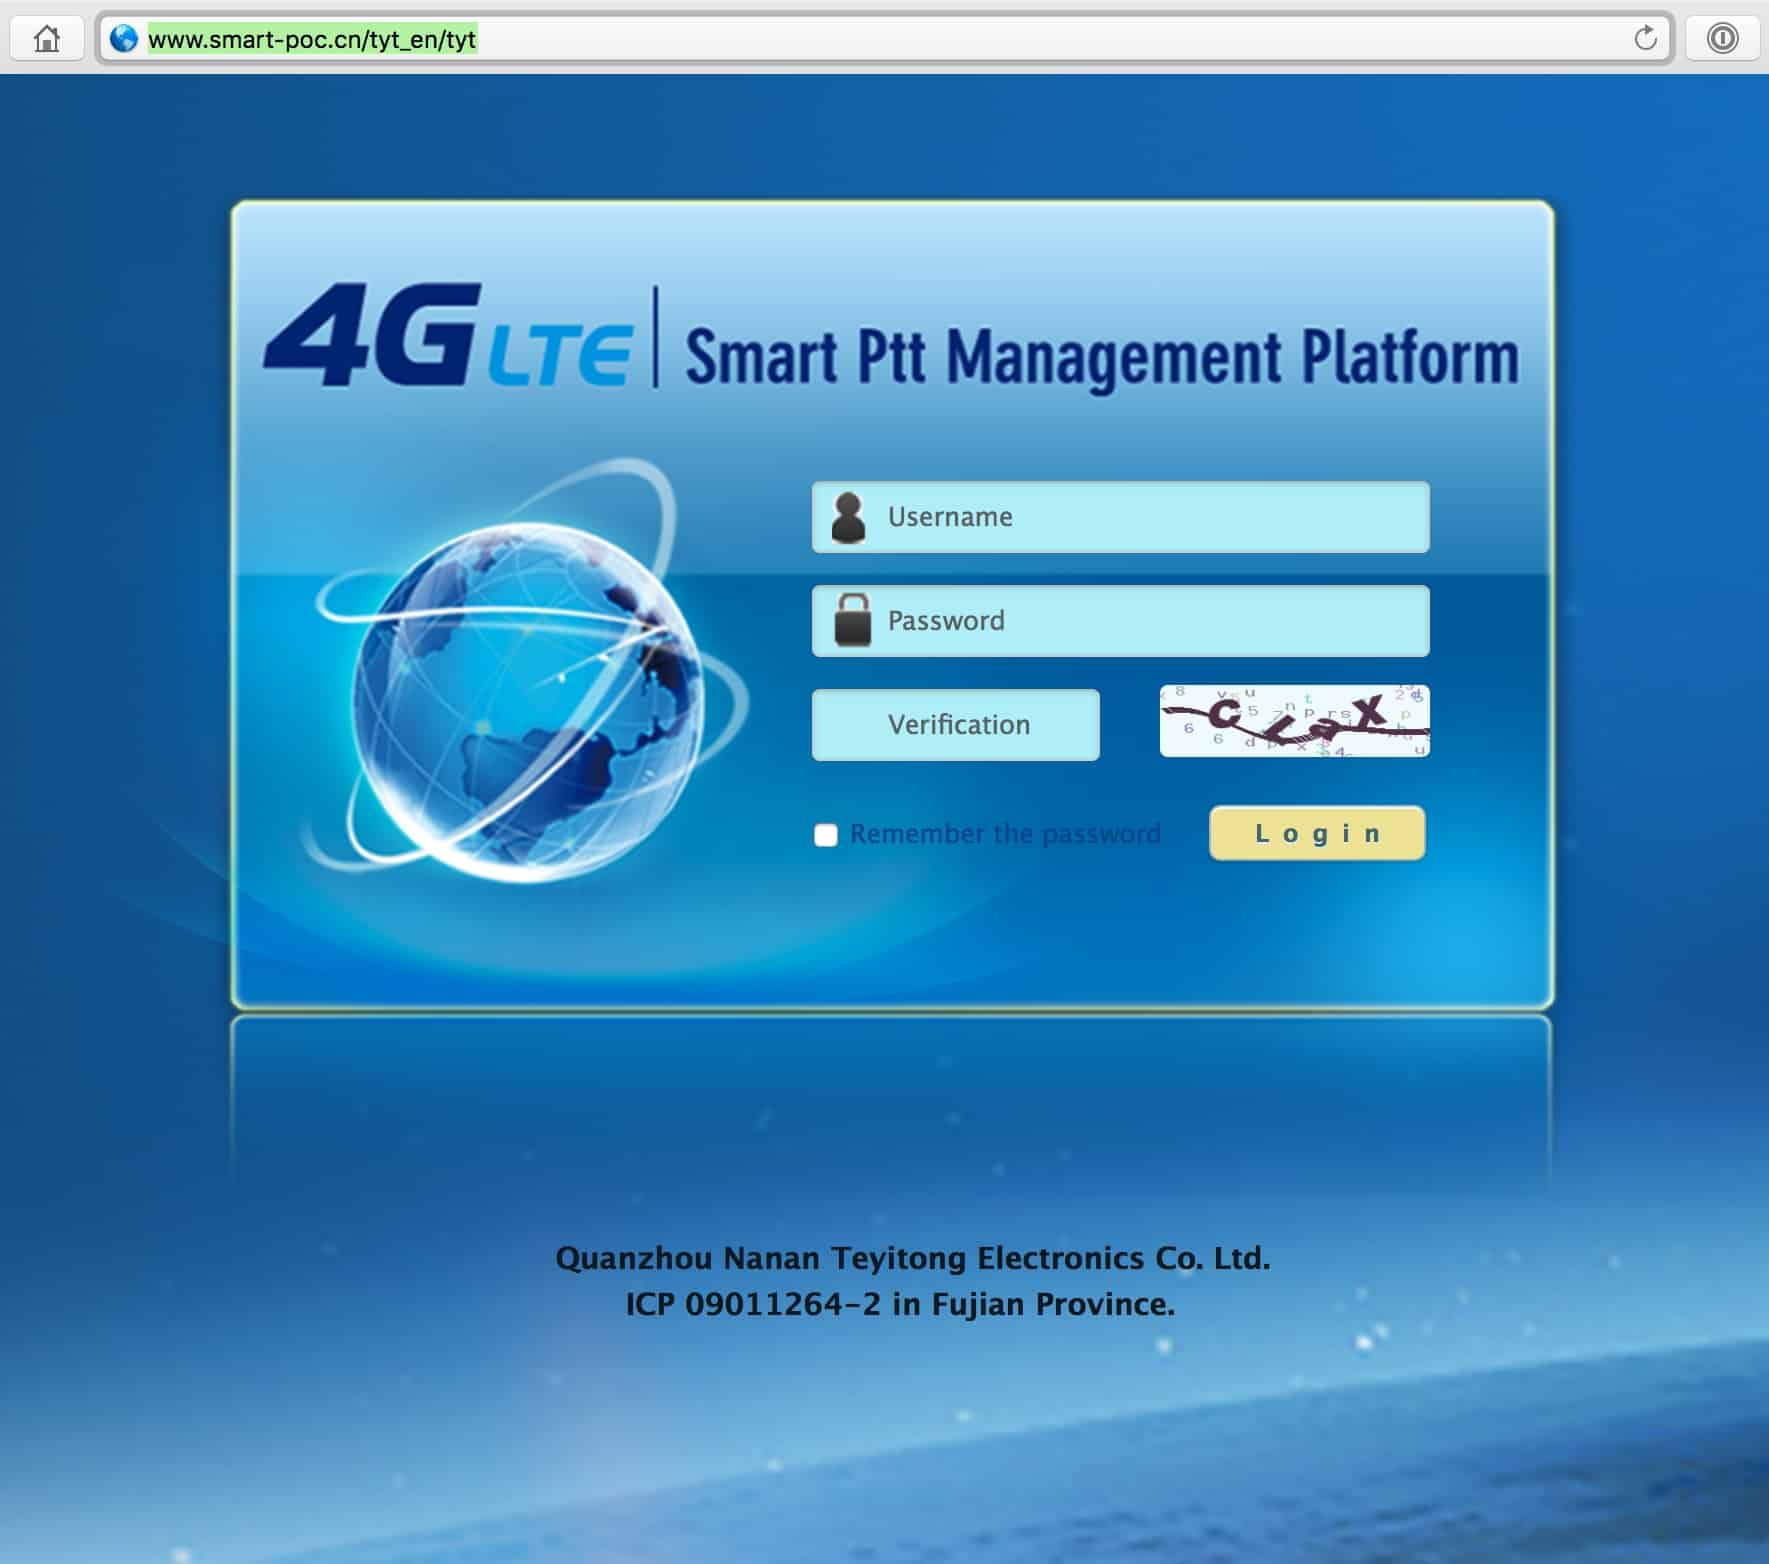 A screenshot of the Smart Ptt Management Platform login webpage